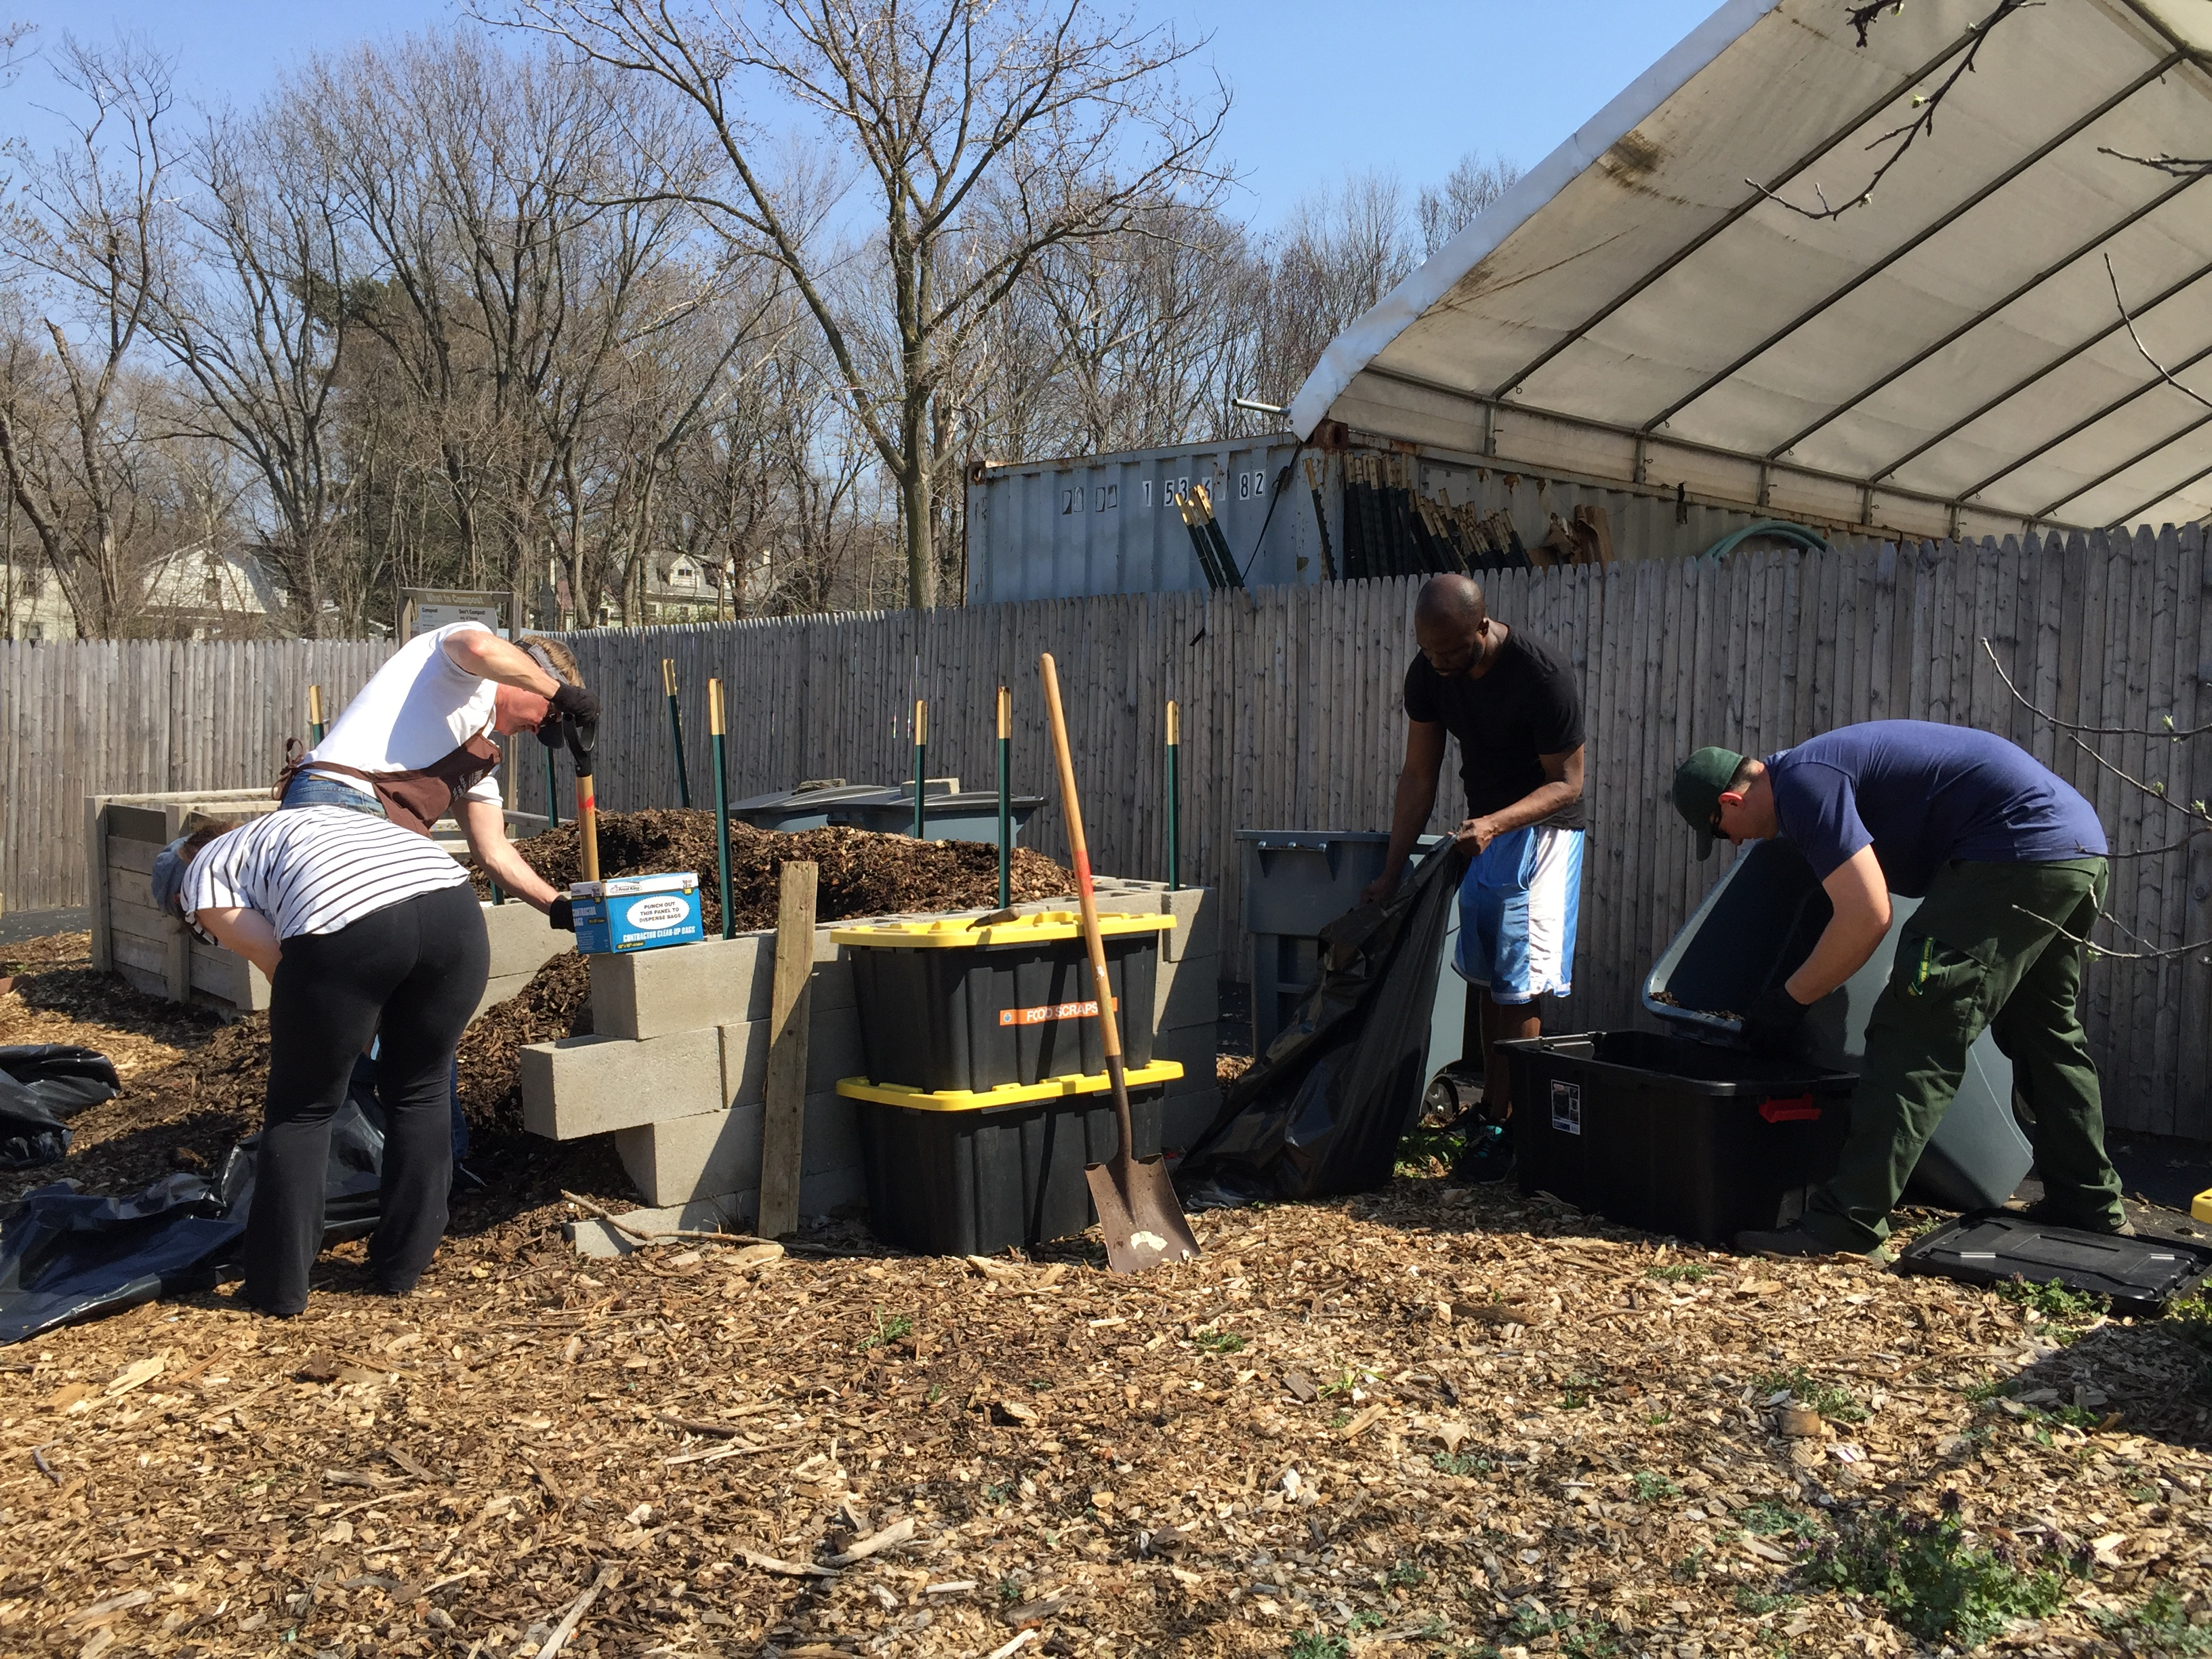 Turn & Learn Compost Work Day (NYC Compost Project)